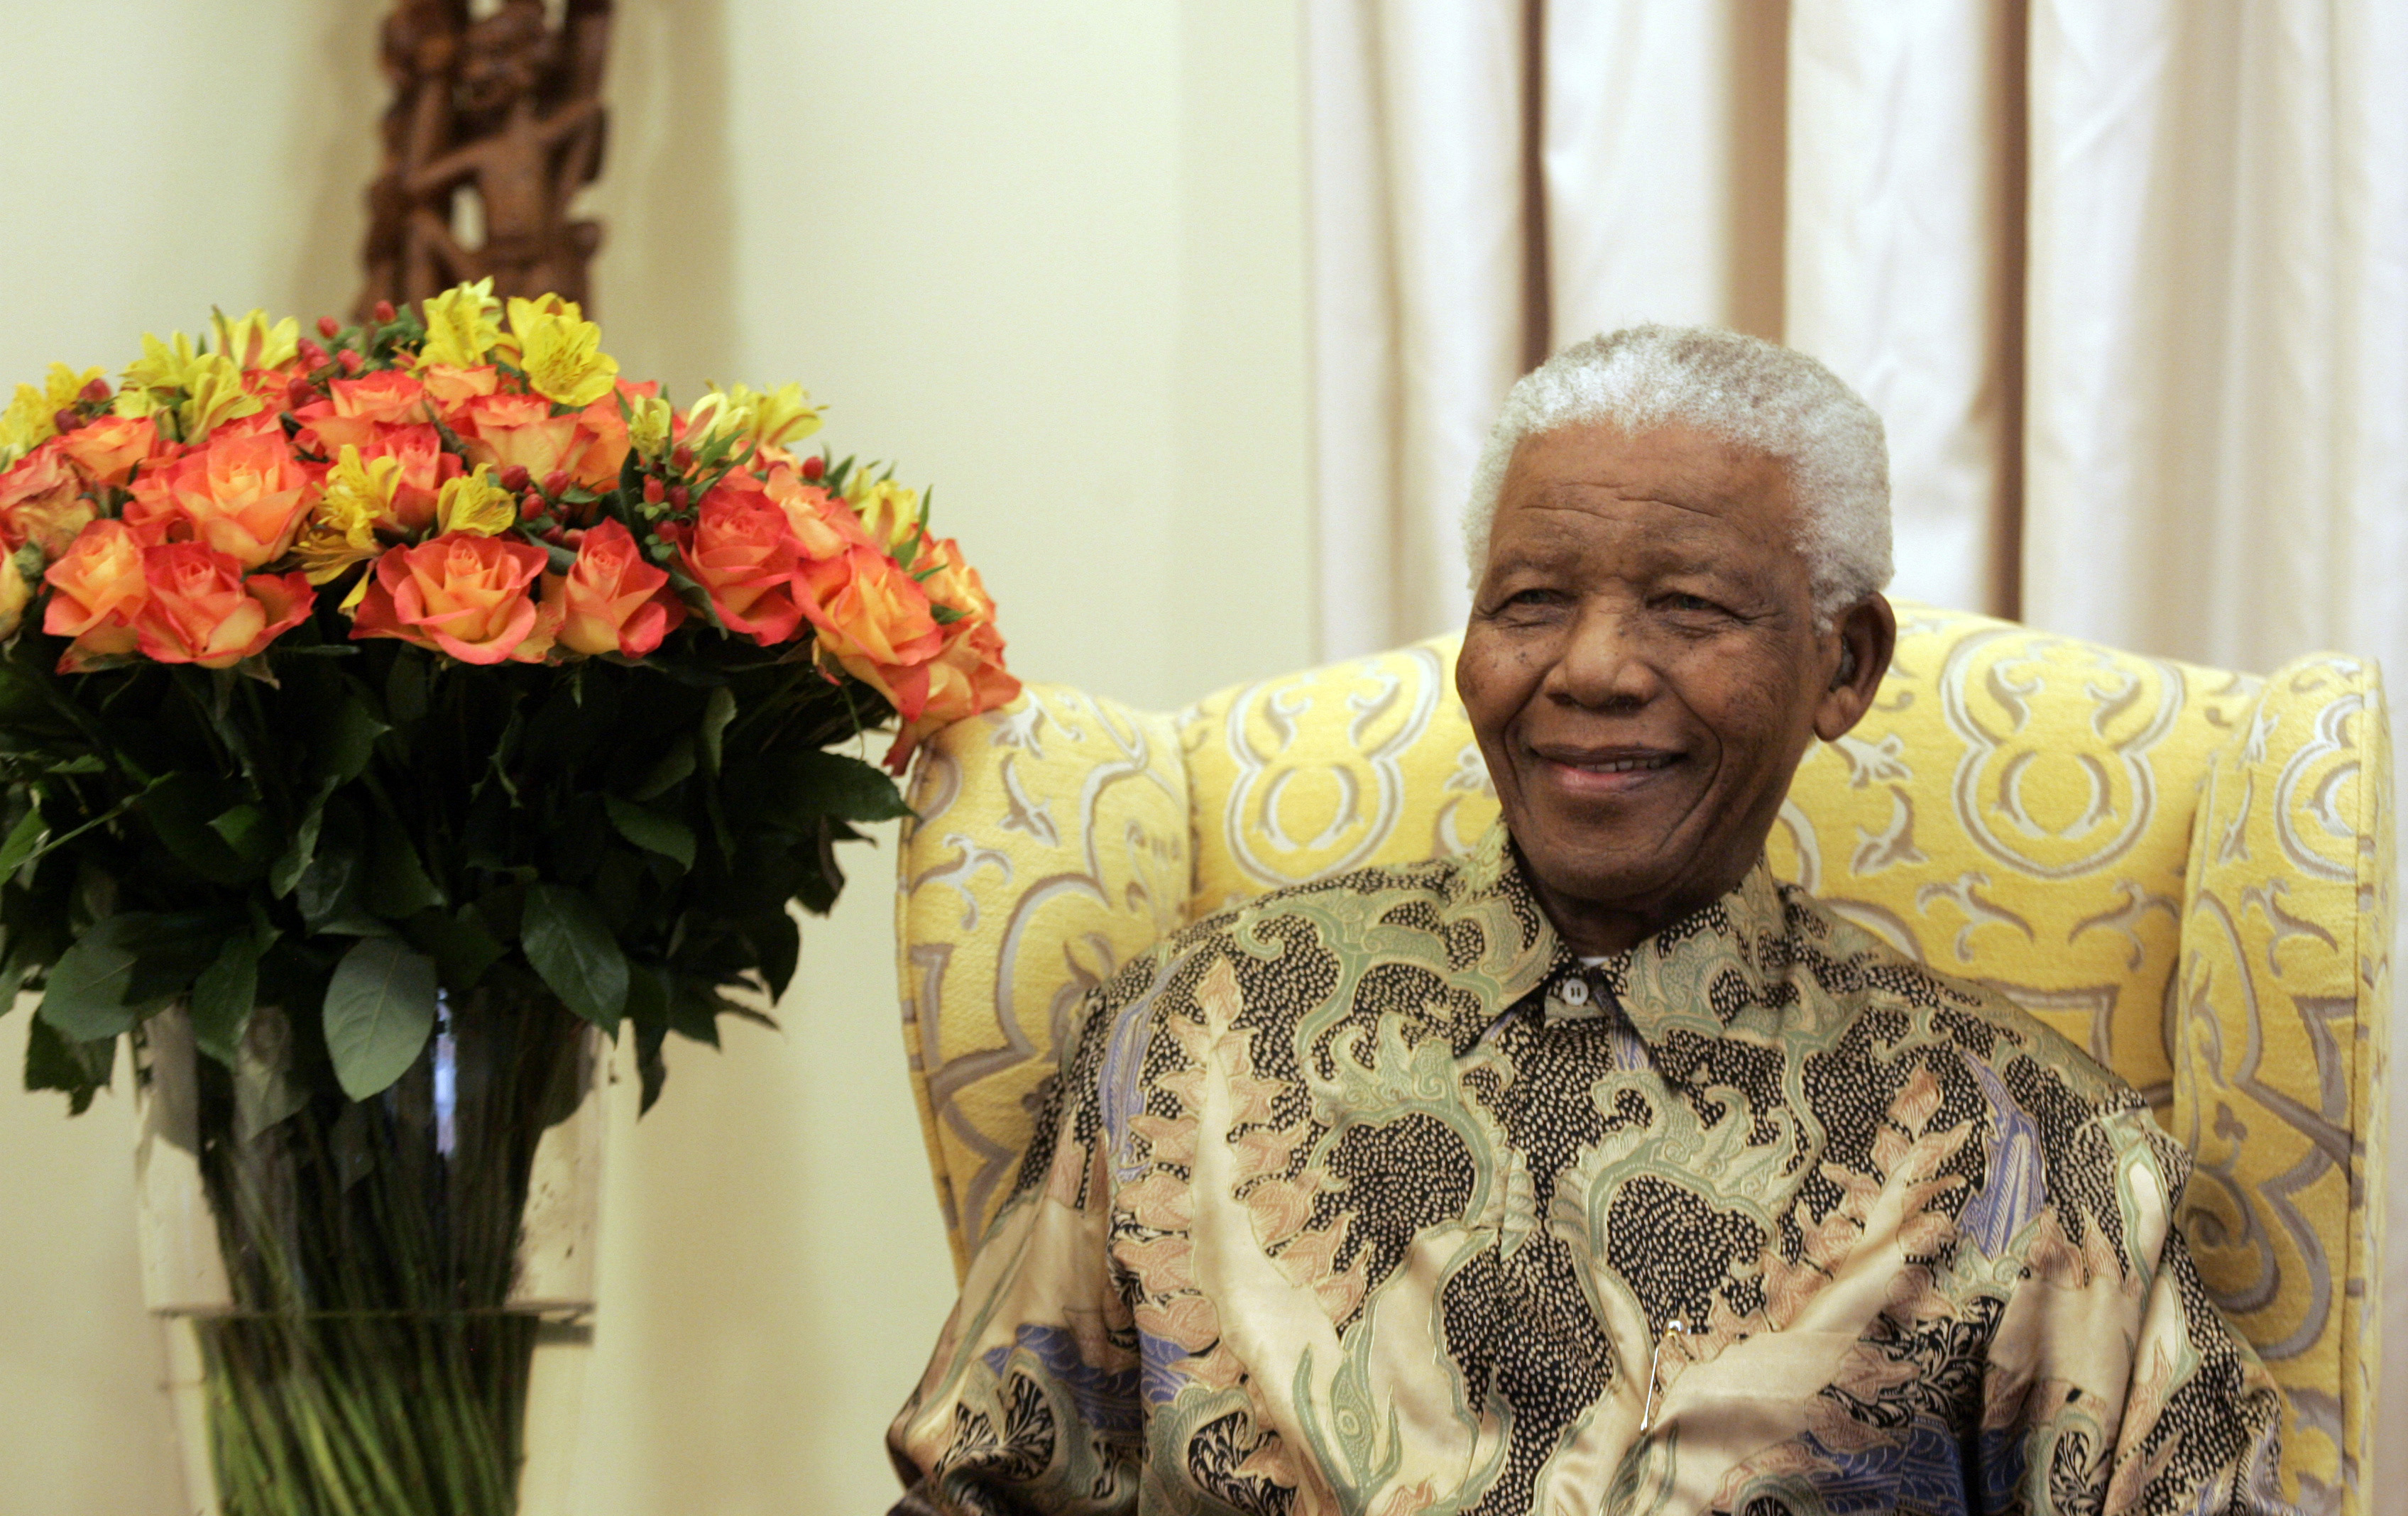 Former South African President Nelson Mandela laughs during an interview with the media at his house in Qunu, Eastern Cape, July 18, 2008. Anti-apartheid icon Mandela celebrated his 90th birthday on Friday. The Nobel peace laureate, who retired from politics nine years ago, has become a symbol of freedom admired the world over. REUTERS/Themba Hadebe/Pool (SOUTH AFRICA) - RTX81T9